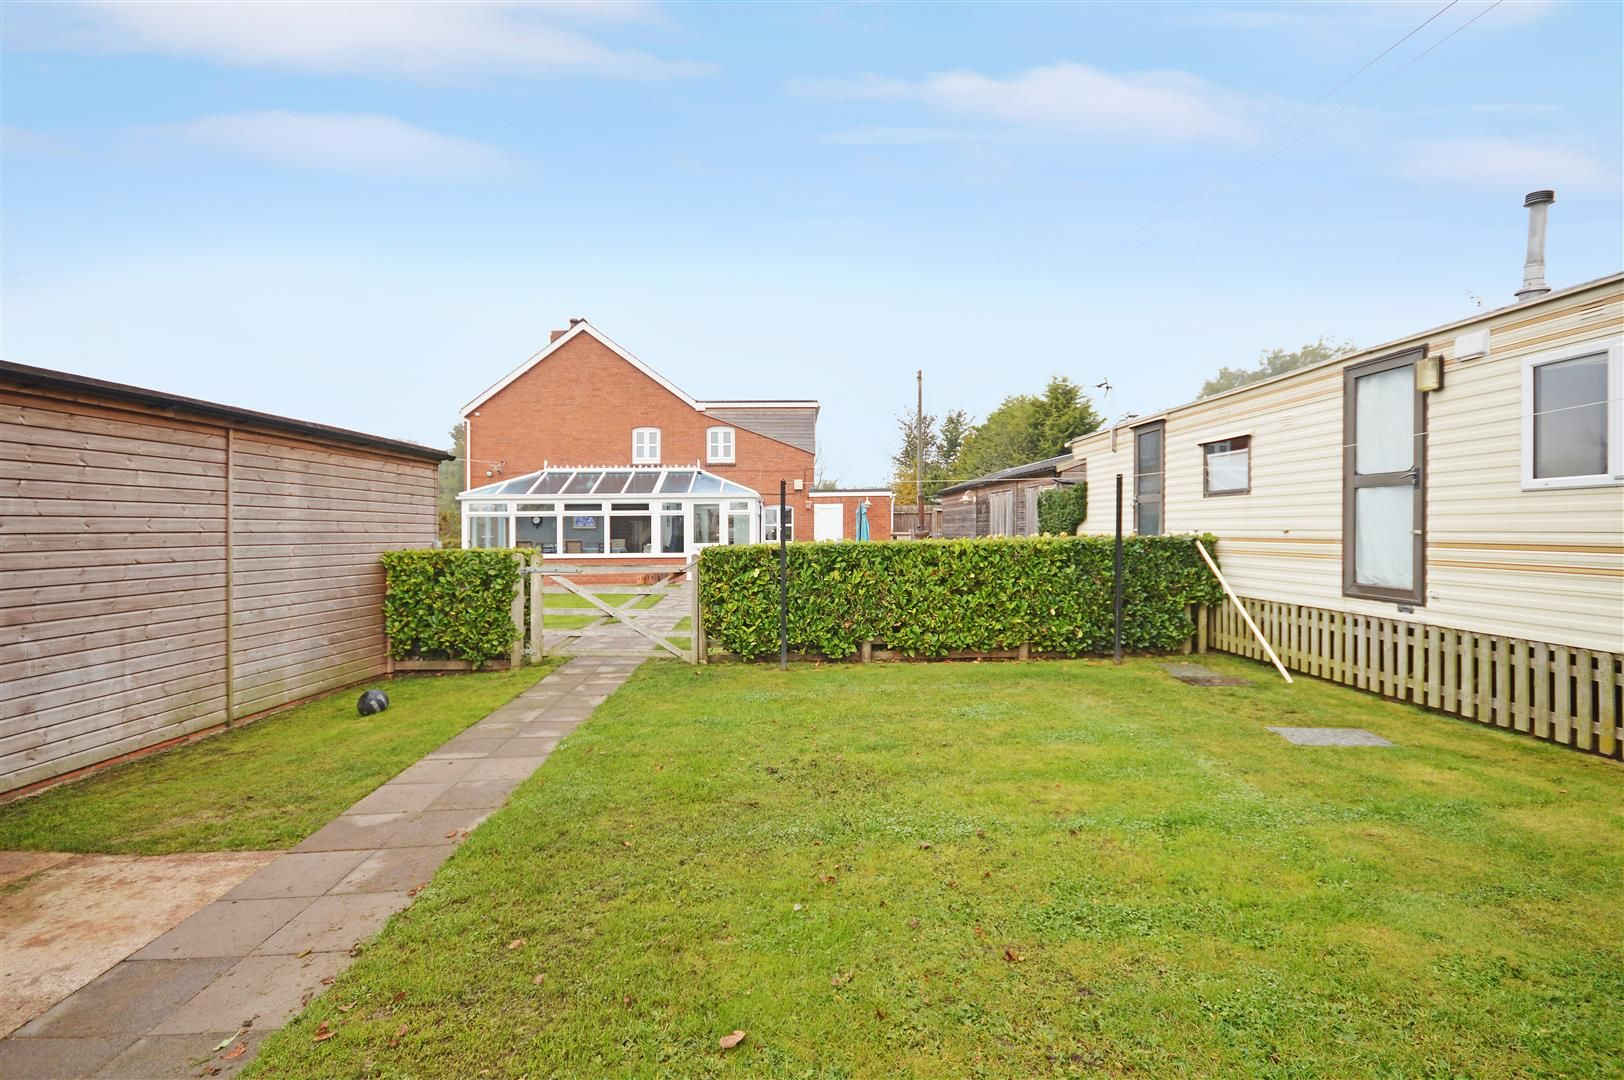 3 bed semi-detached for sale in Sutton St. Nicholas  - Property Image 20